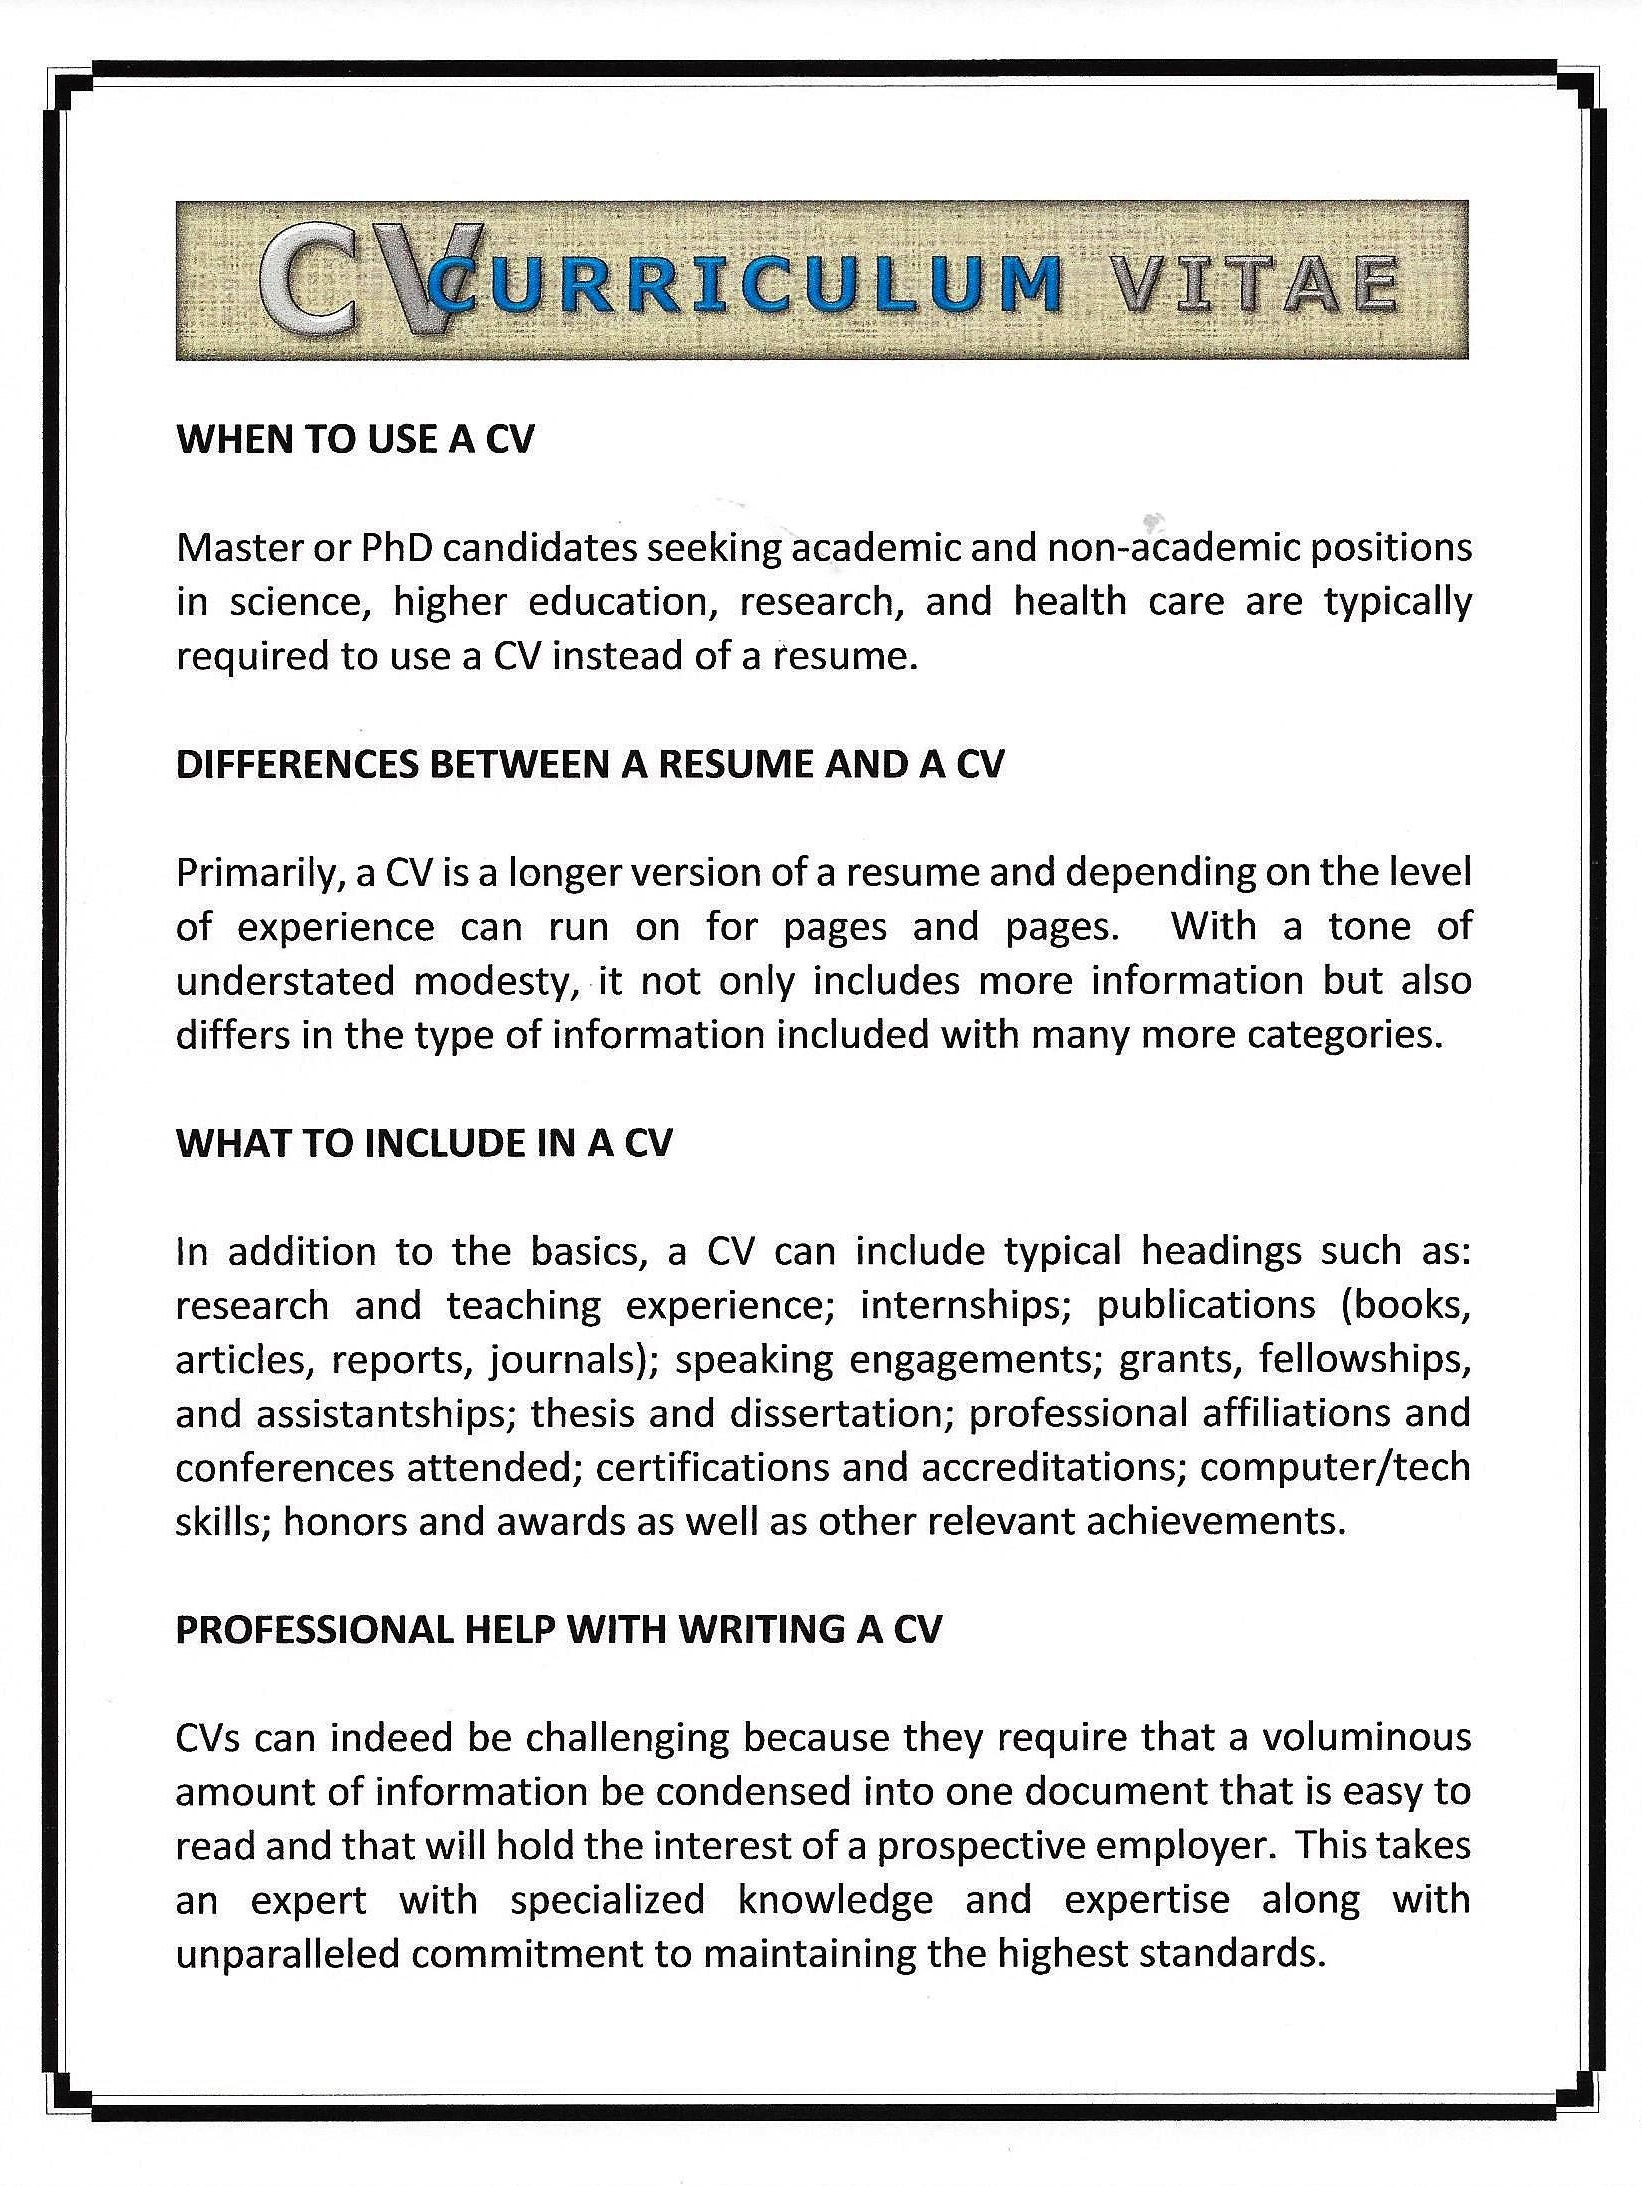 the custom curriculum vitae - Typical Curriculum Vitae